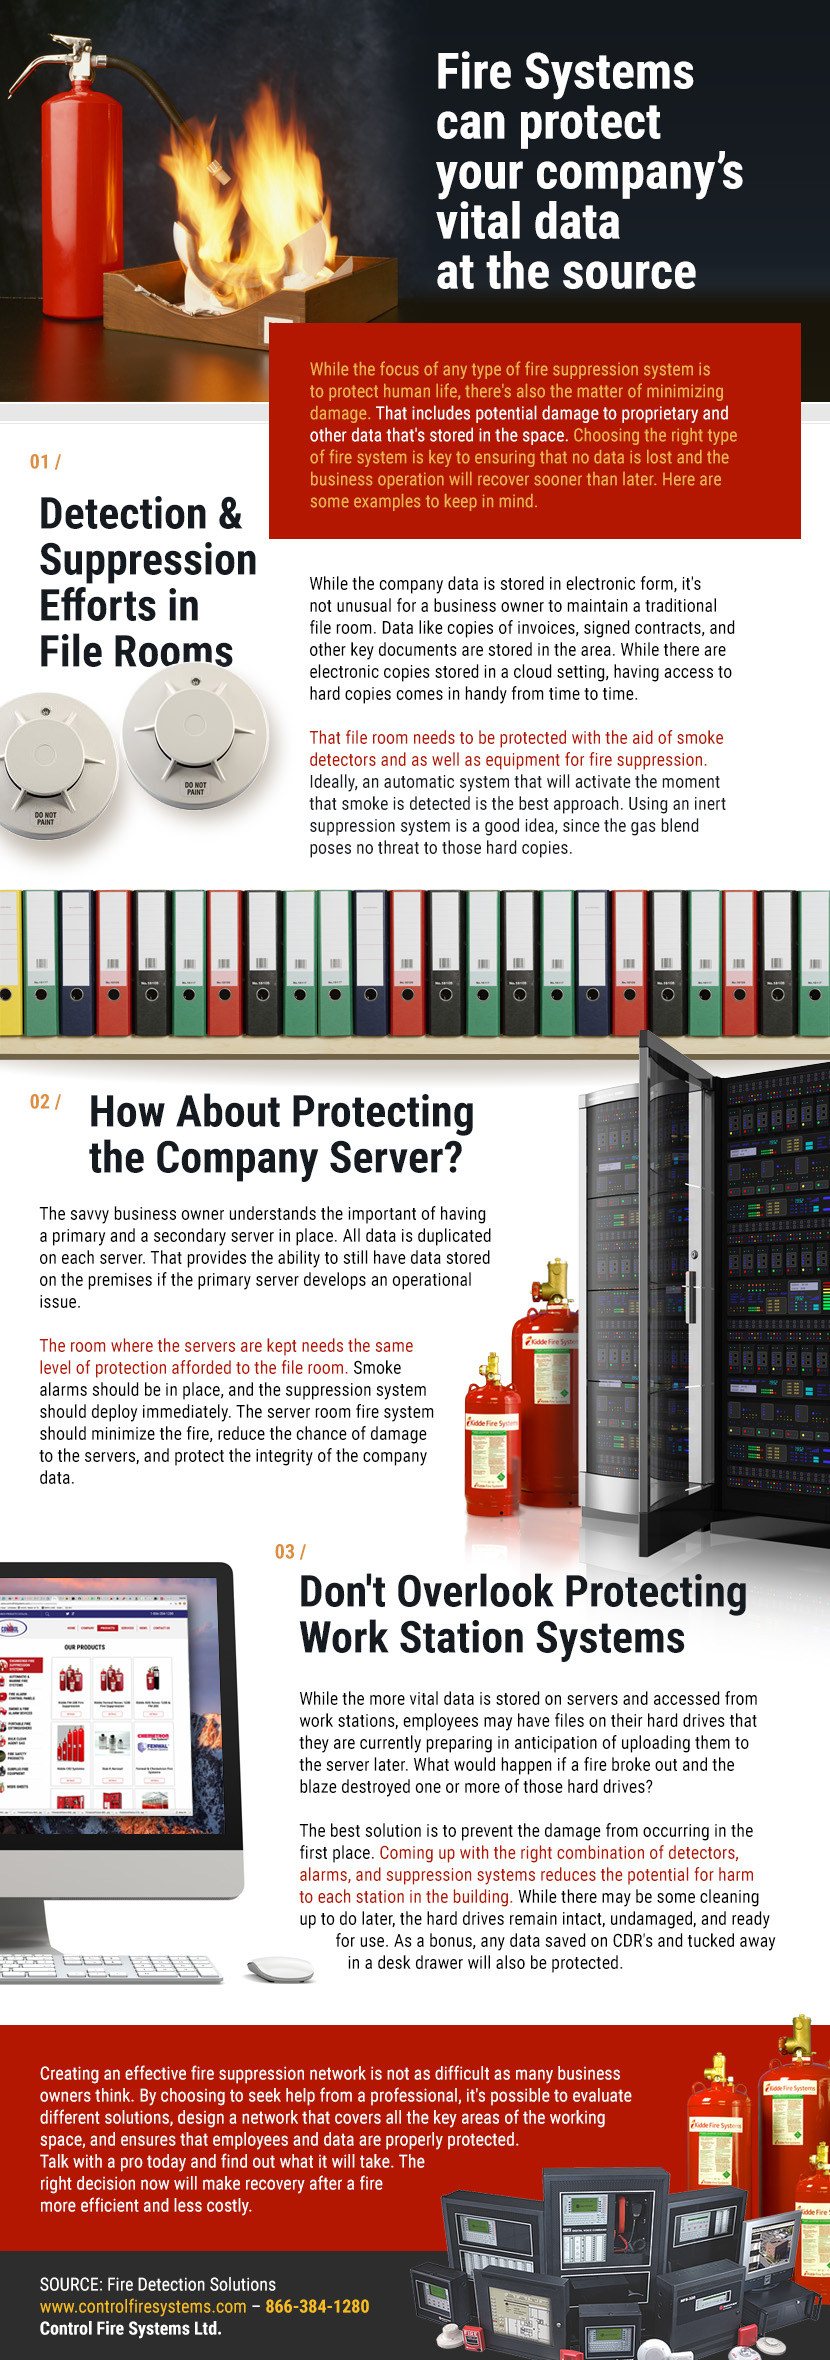 Fire Systems Can Protect Your Company's Vital Data at the Source - Control Fire Systems Ifographic